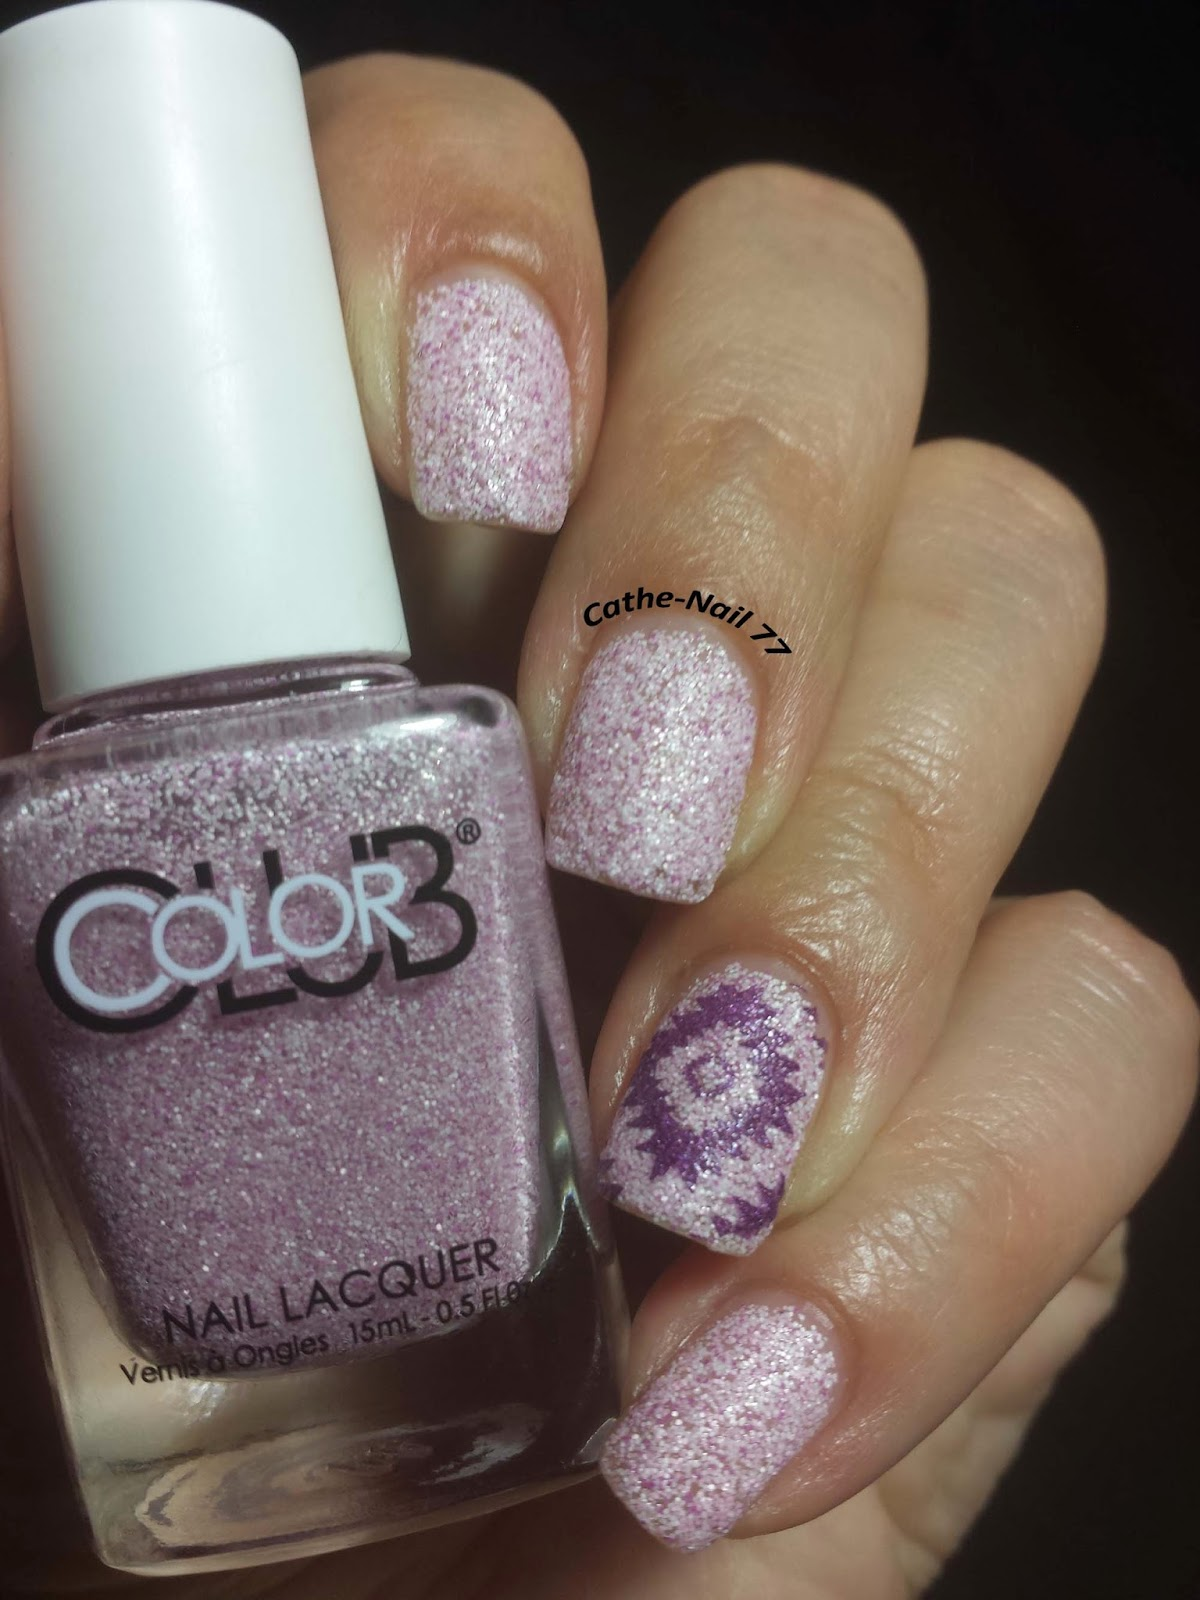 http://cathenail.blogspot.fr/2014/06/color-club-pixi-lated-revlon-wintermint.html